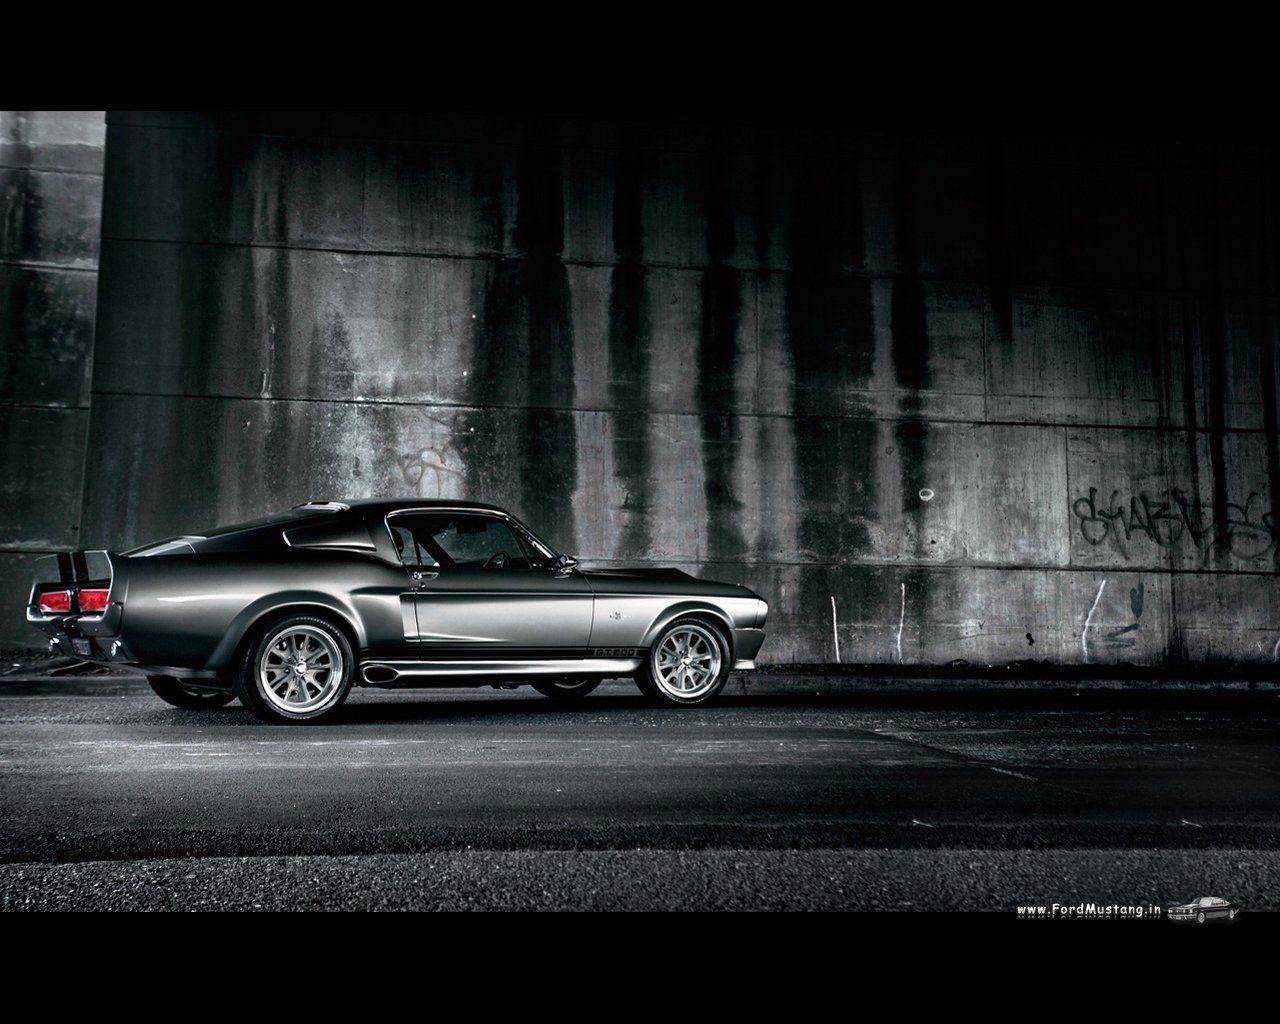 1967 Mustang Wallpapers Wallpaper Cave In 2020 Ford Mustang Gt